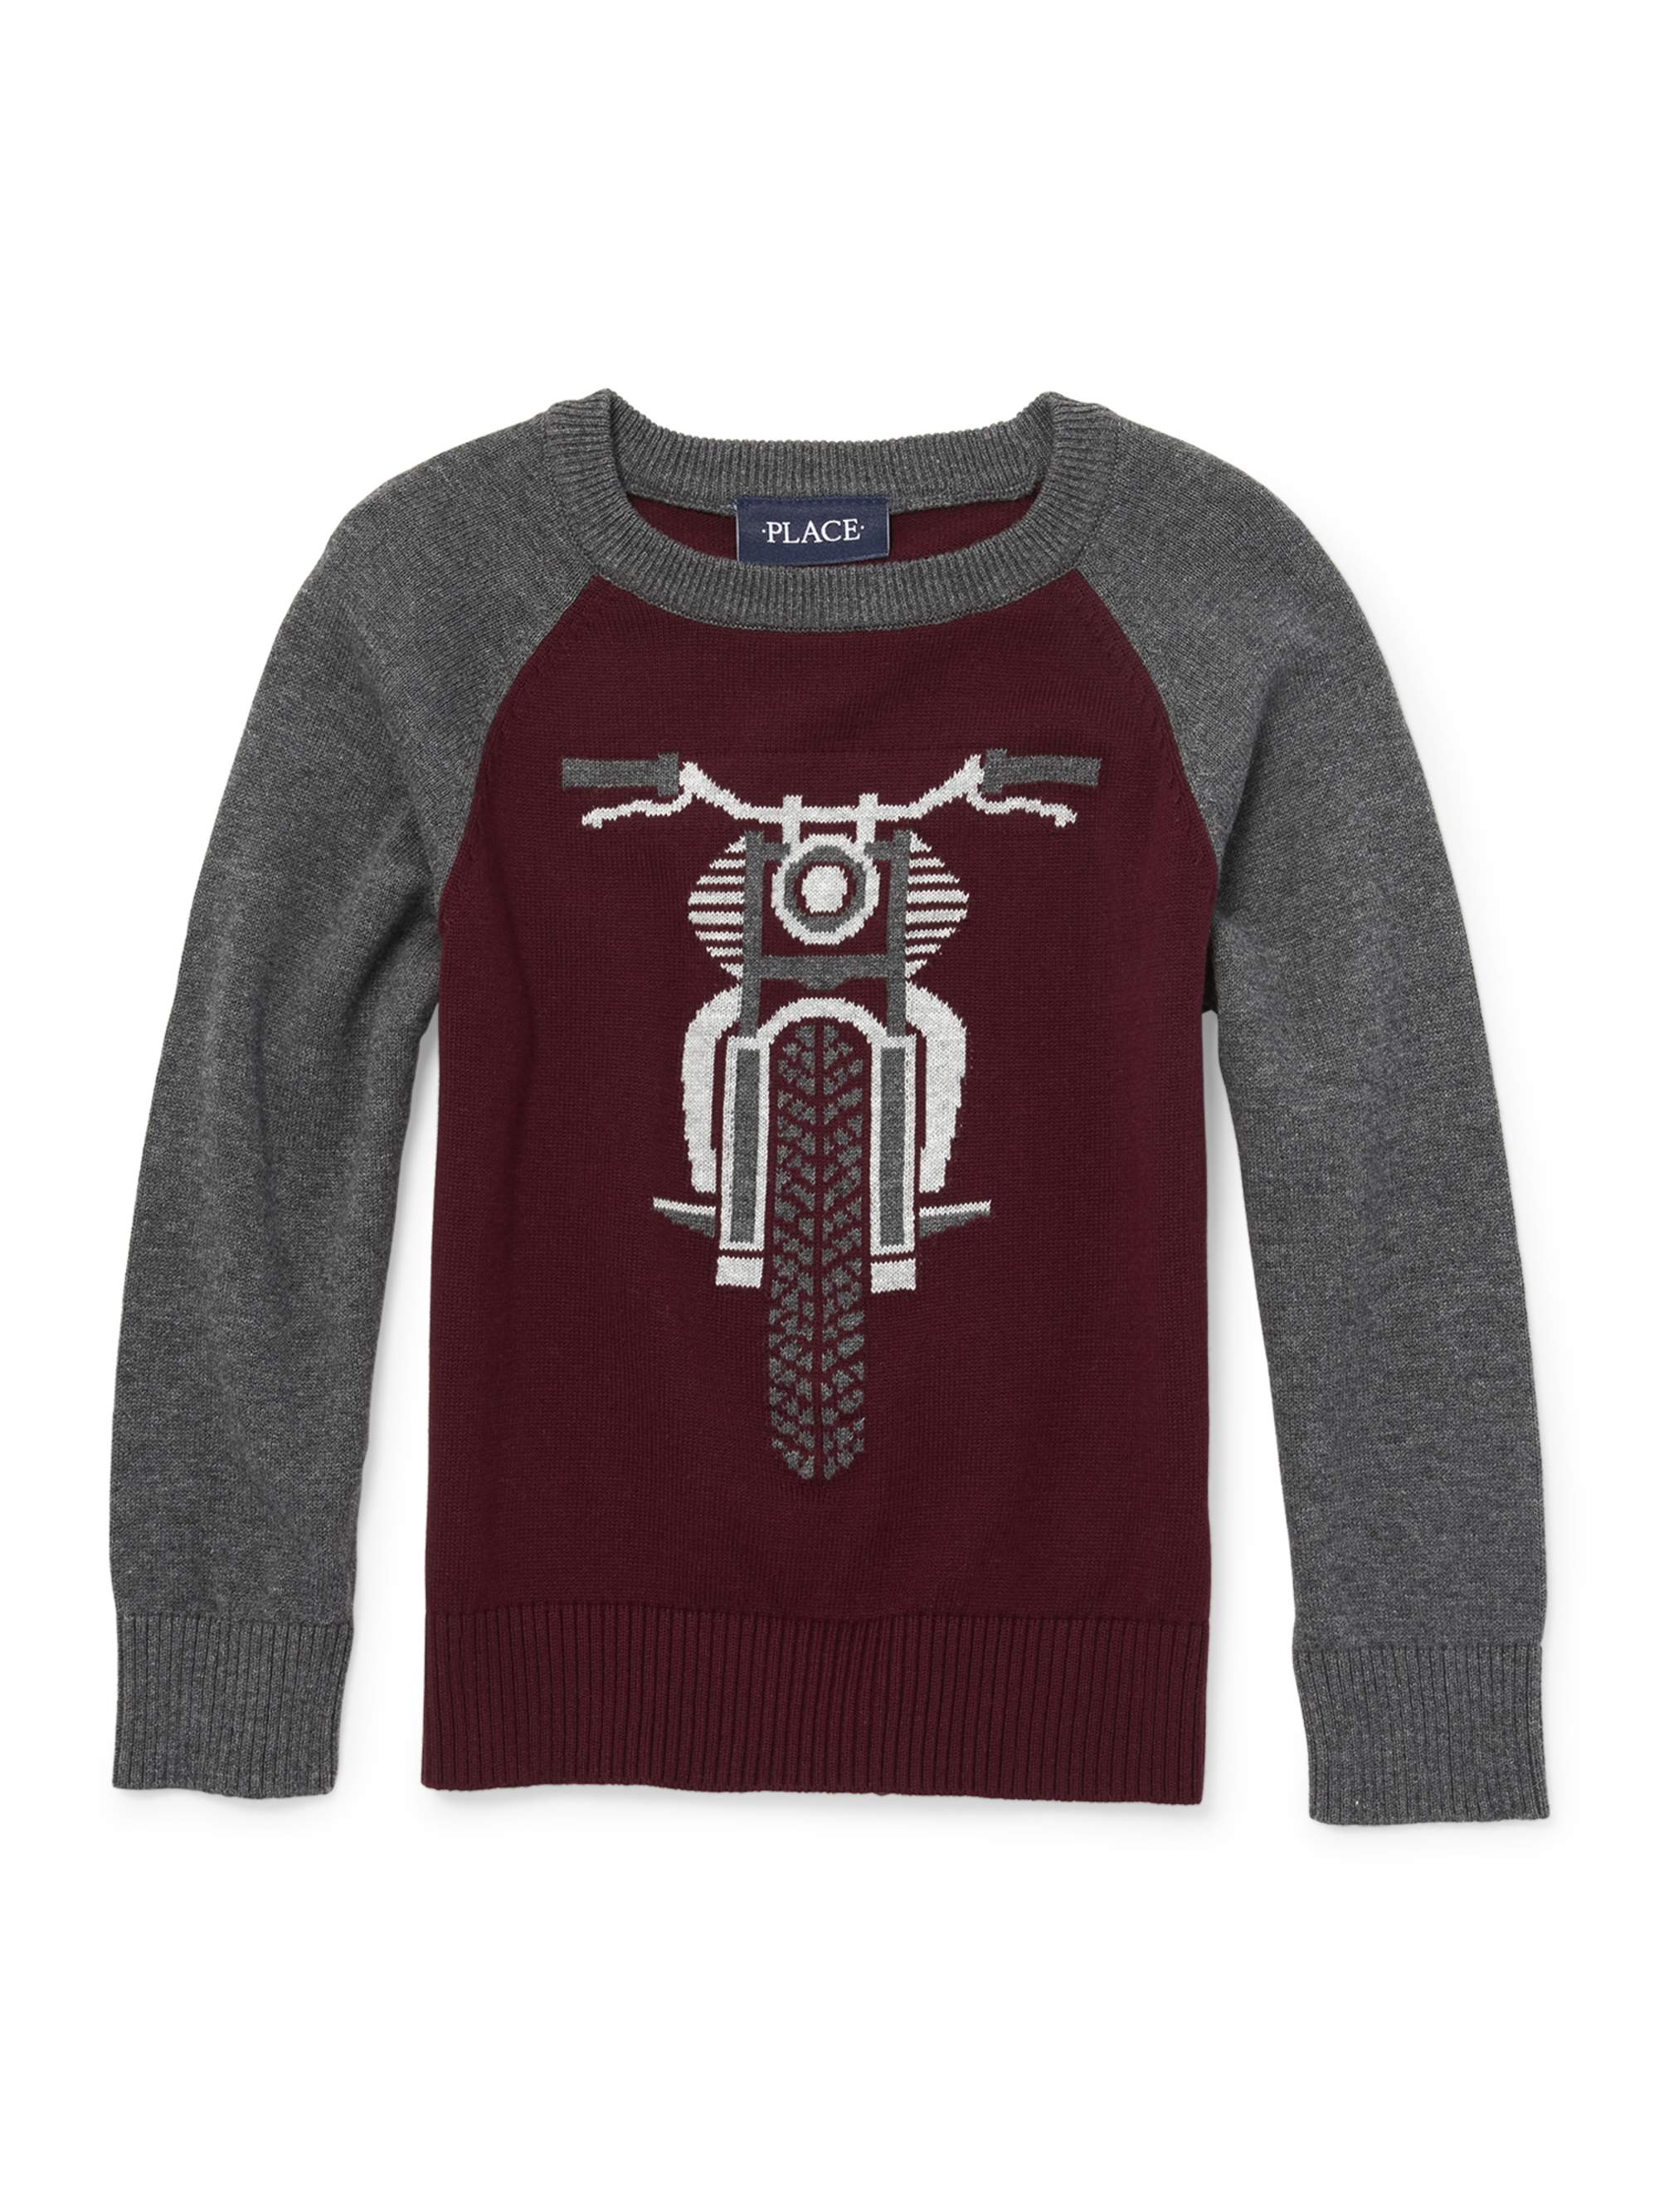 Long Sleeve Graphic Pullon Sweater (Little Boys & Big Boys)